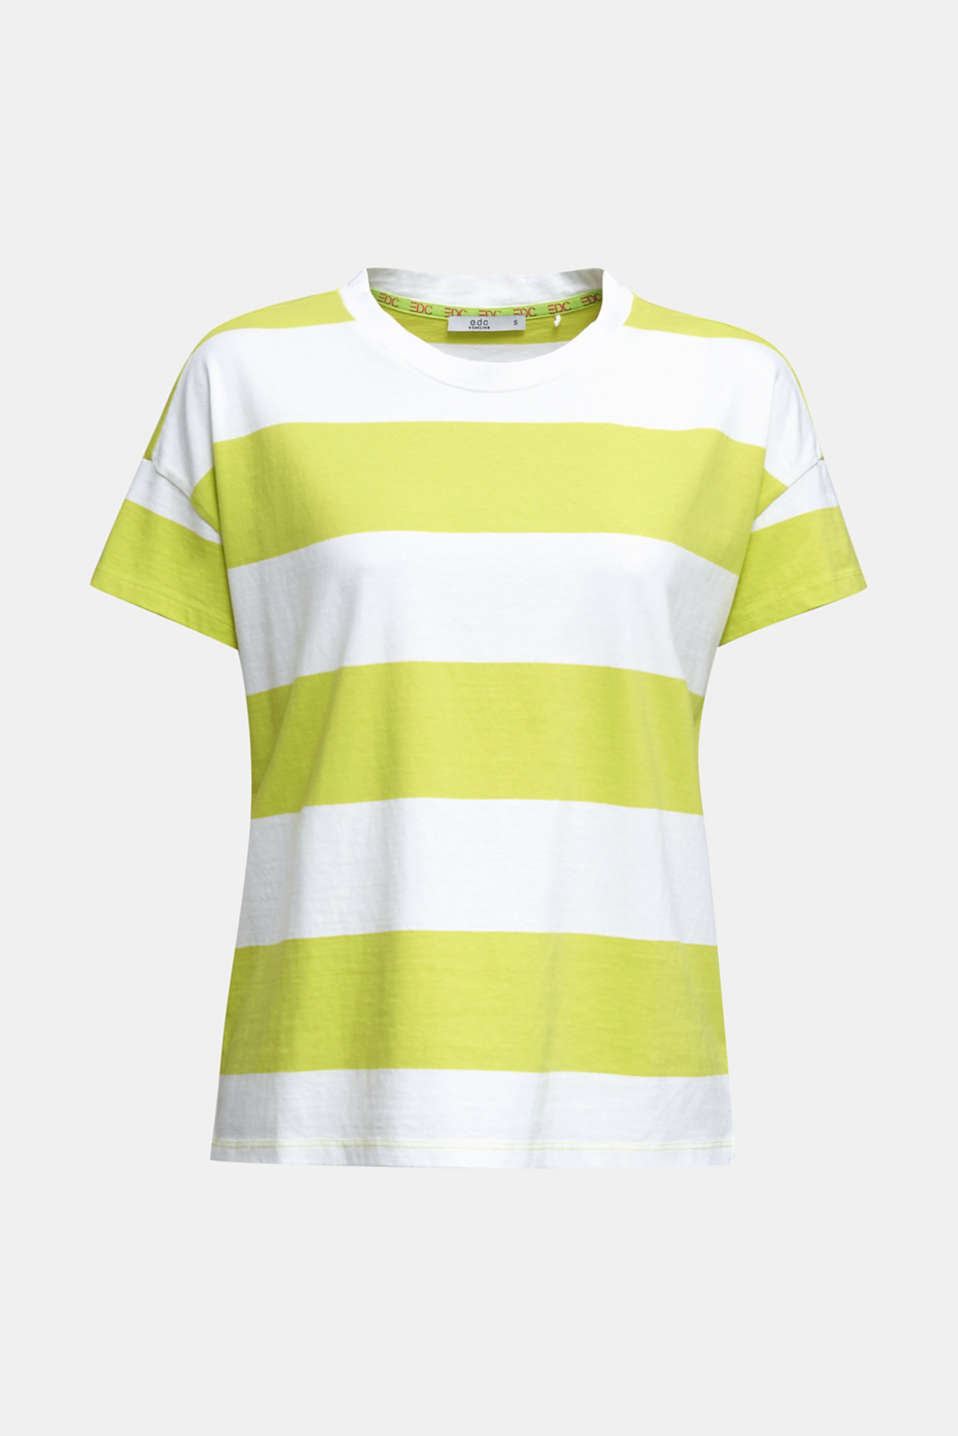 T-shirt with block stripes, 100% cotton, CITRUS GREEN, detail image number 6